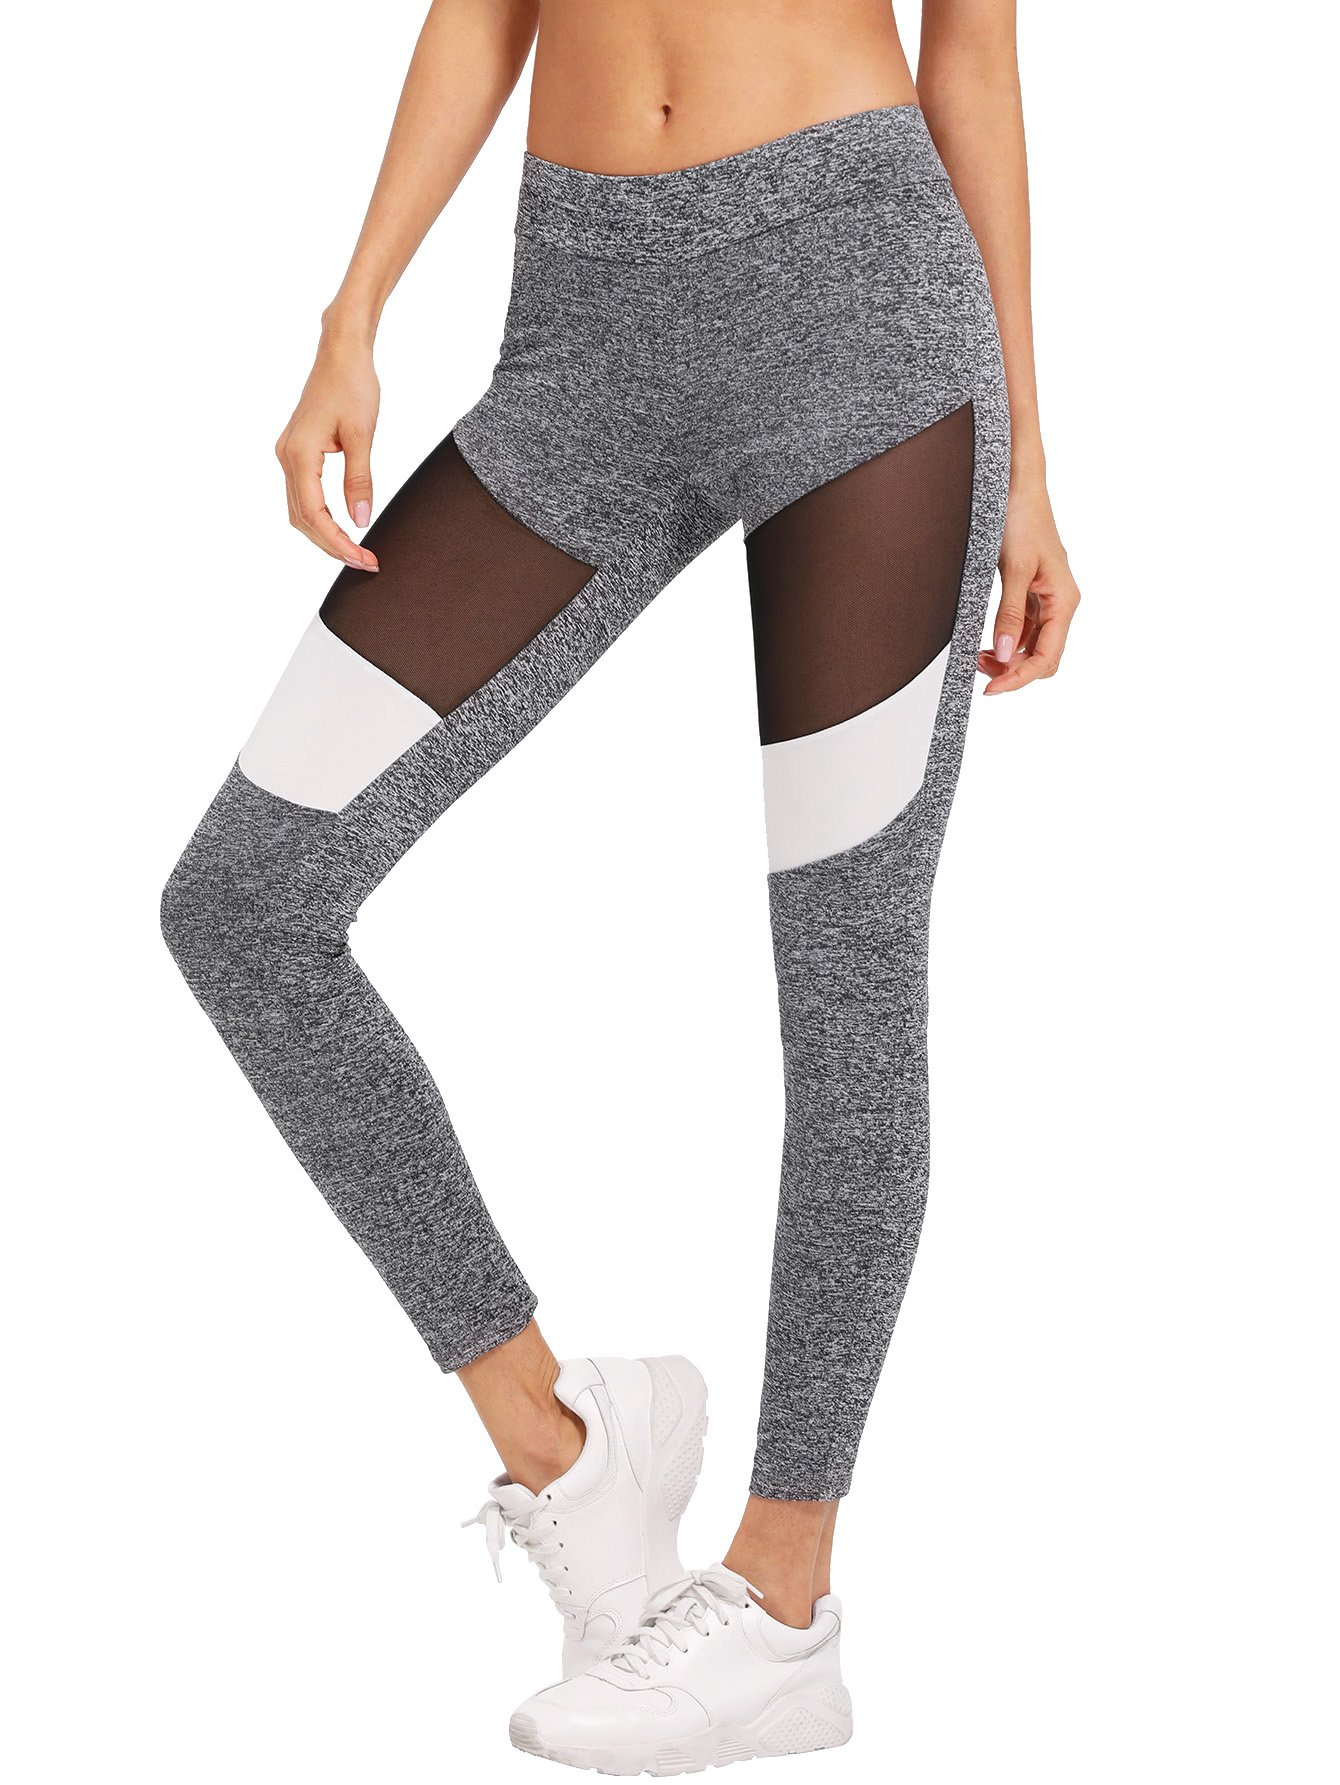 81ef57d50561de Galleon - SweatyRocks Women's Stretchy Skinny Sheer Mesh Insert Workout  Leggings Yoga Tights Color Block #13 XS